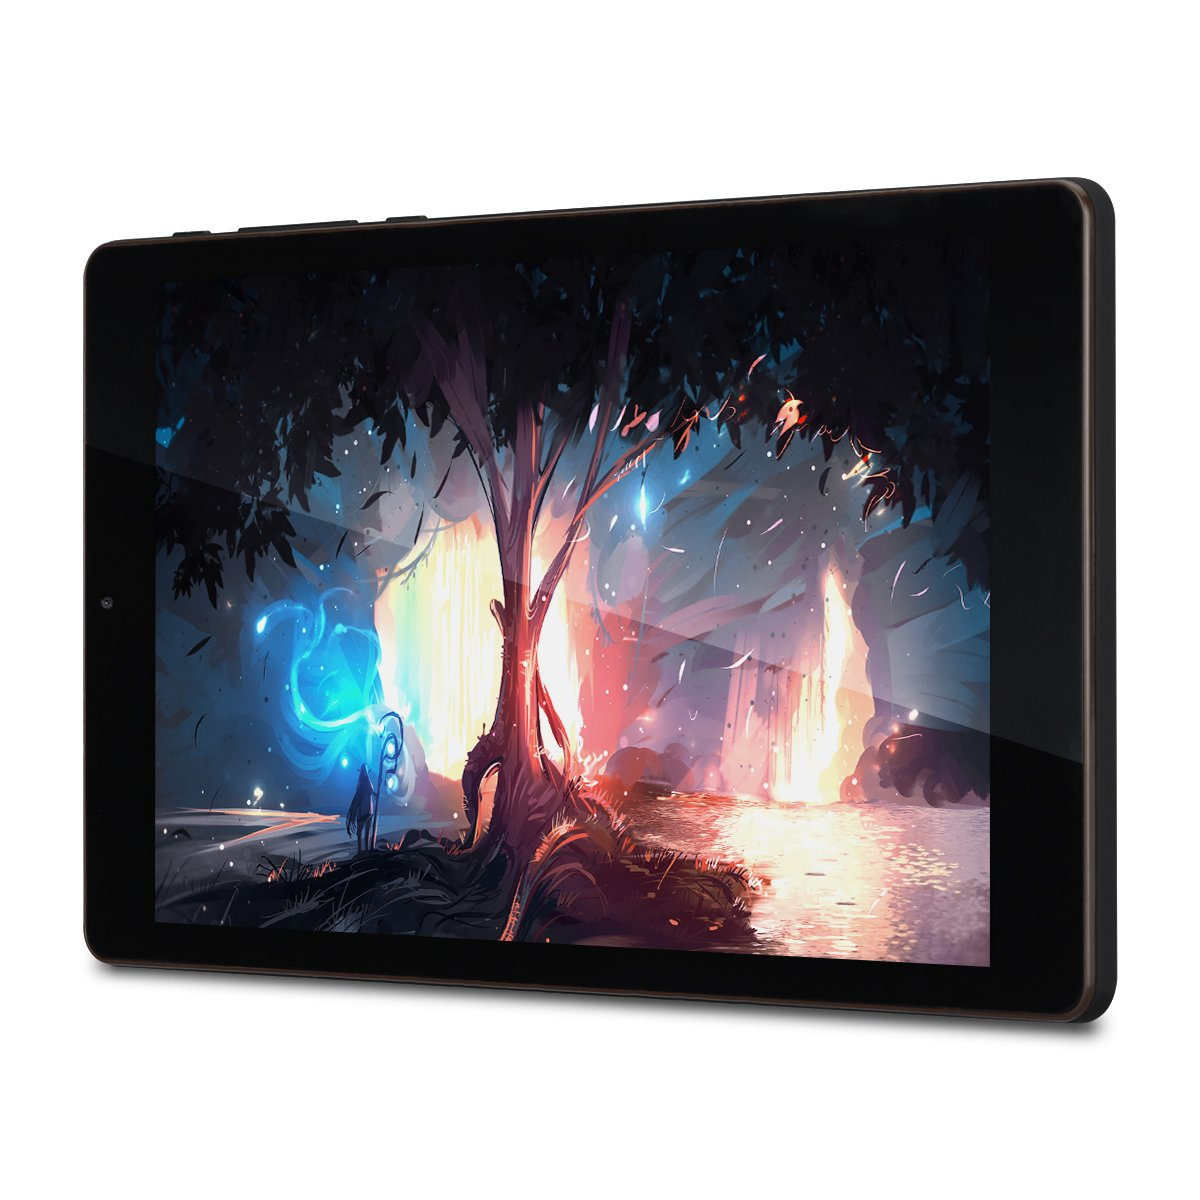 "Nextbook Ares8 8"" 1280x800 Android 5.1 Intel Z3735G 1GB+16GB Dual Camera WIFI Bluetooth HDMI Tablet PC"